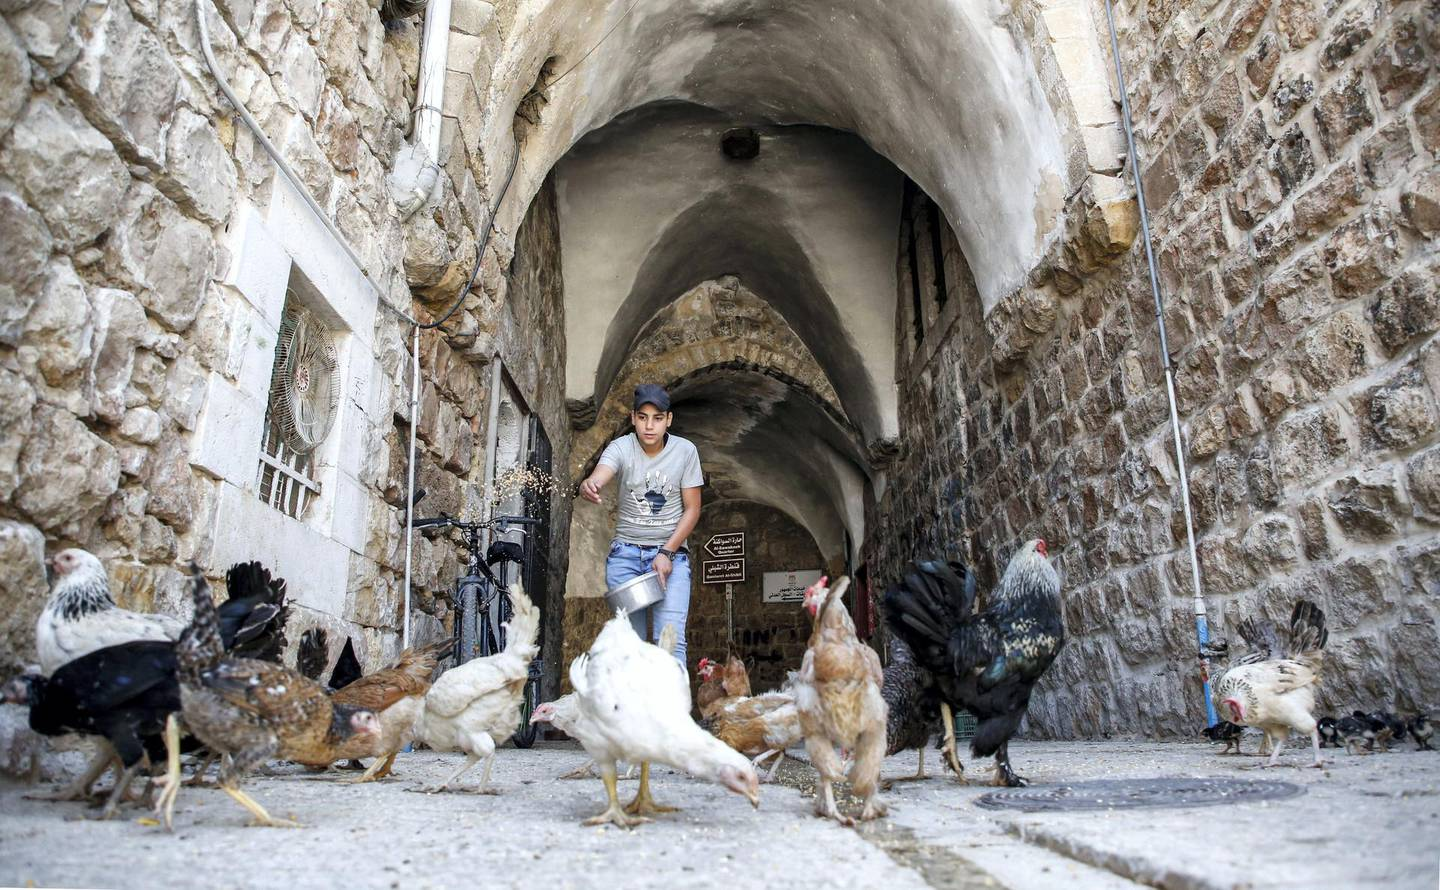 A Palestinian feeds hens in an alley of the old market of the divided West Bank city of Hebron, on July 7, 2017. - On July 7, 2017 UNESCO declared in a secret ballot the Old City of Hebron in the occupied West Bank a protected heritage site. Hebron is home to more than 200,000 Palestinians, and a few hundred Israeli settlers who live in a heavily fortified enclave near the site known to Muslims as the Ibrahimi Mosque and to Jews as the Cave of the Patriarchs. (Photo by HAZEM BADER / AFP)